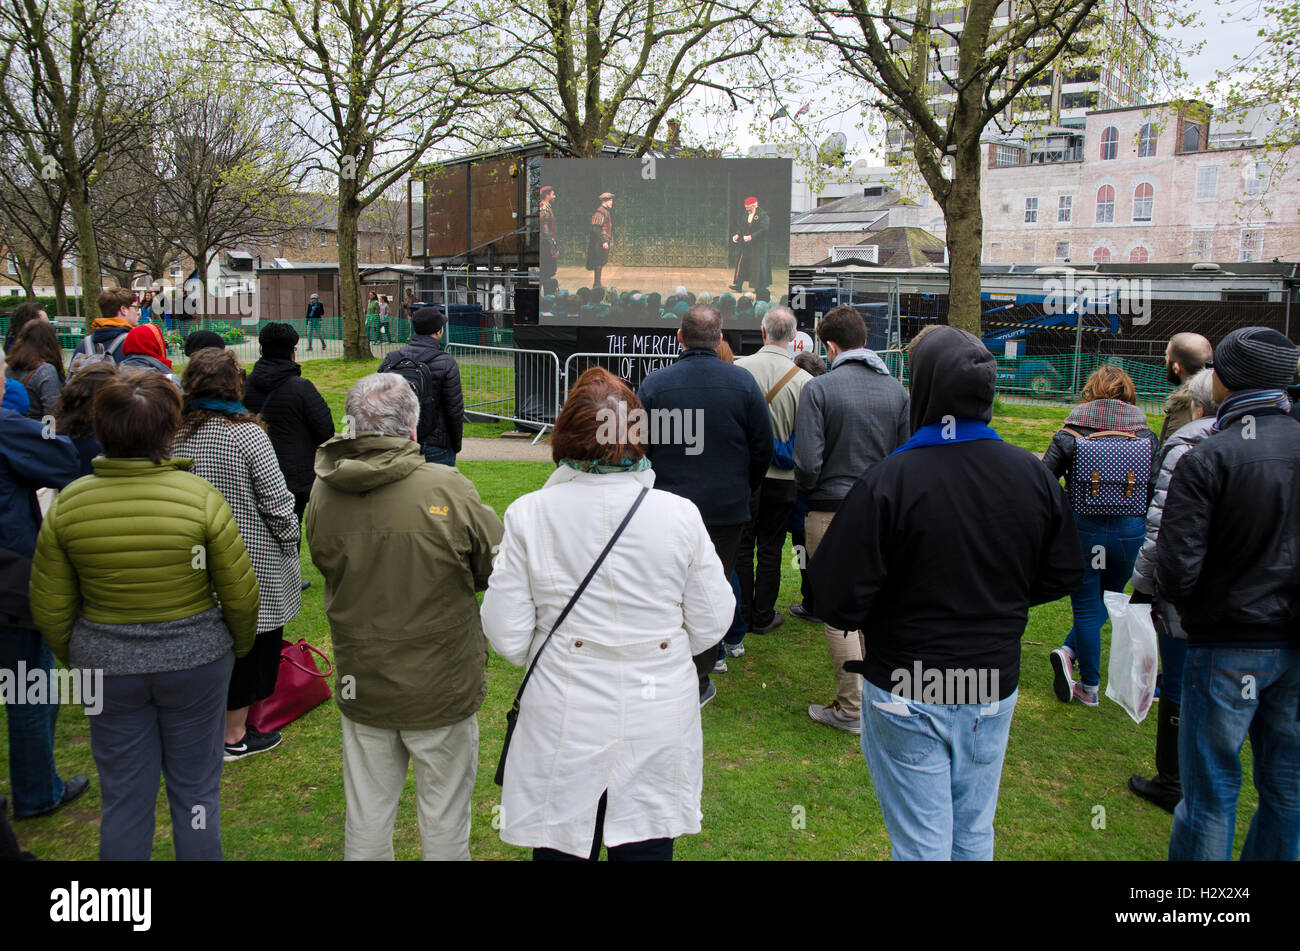 The Merchant of Venice is a play by William Shakespeare/ plays in open air, crowd watching in the park - Stock Image